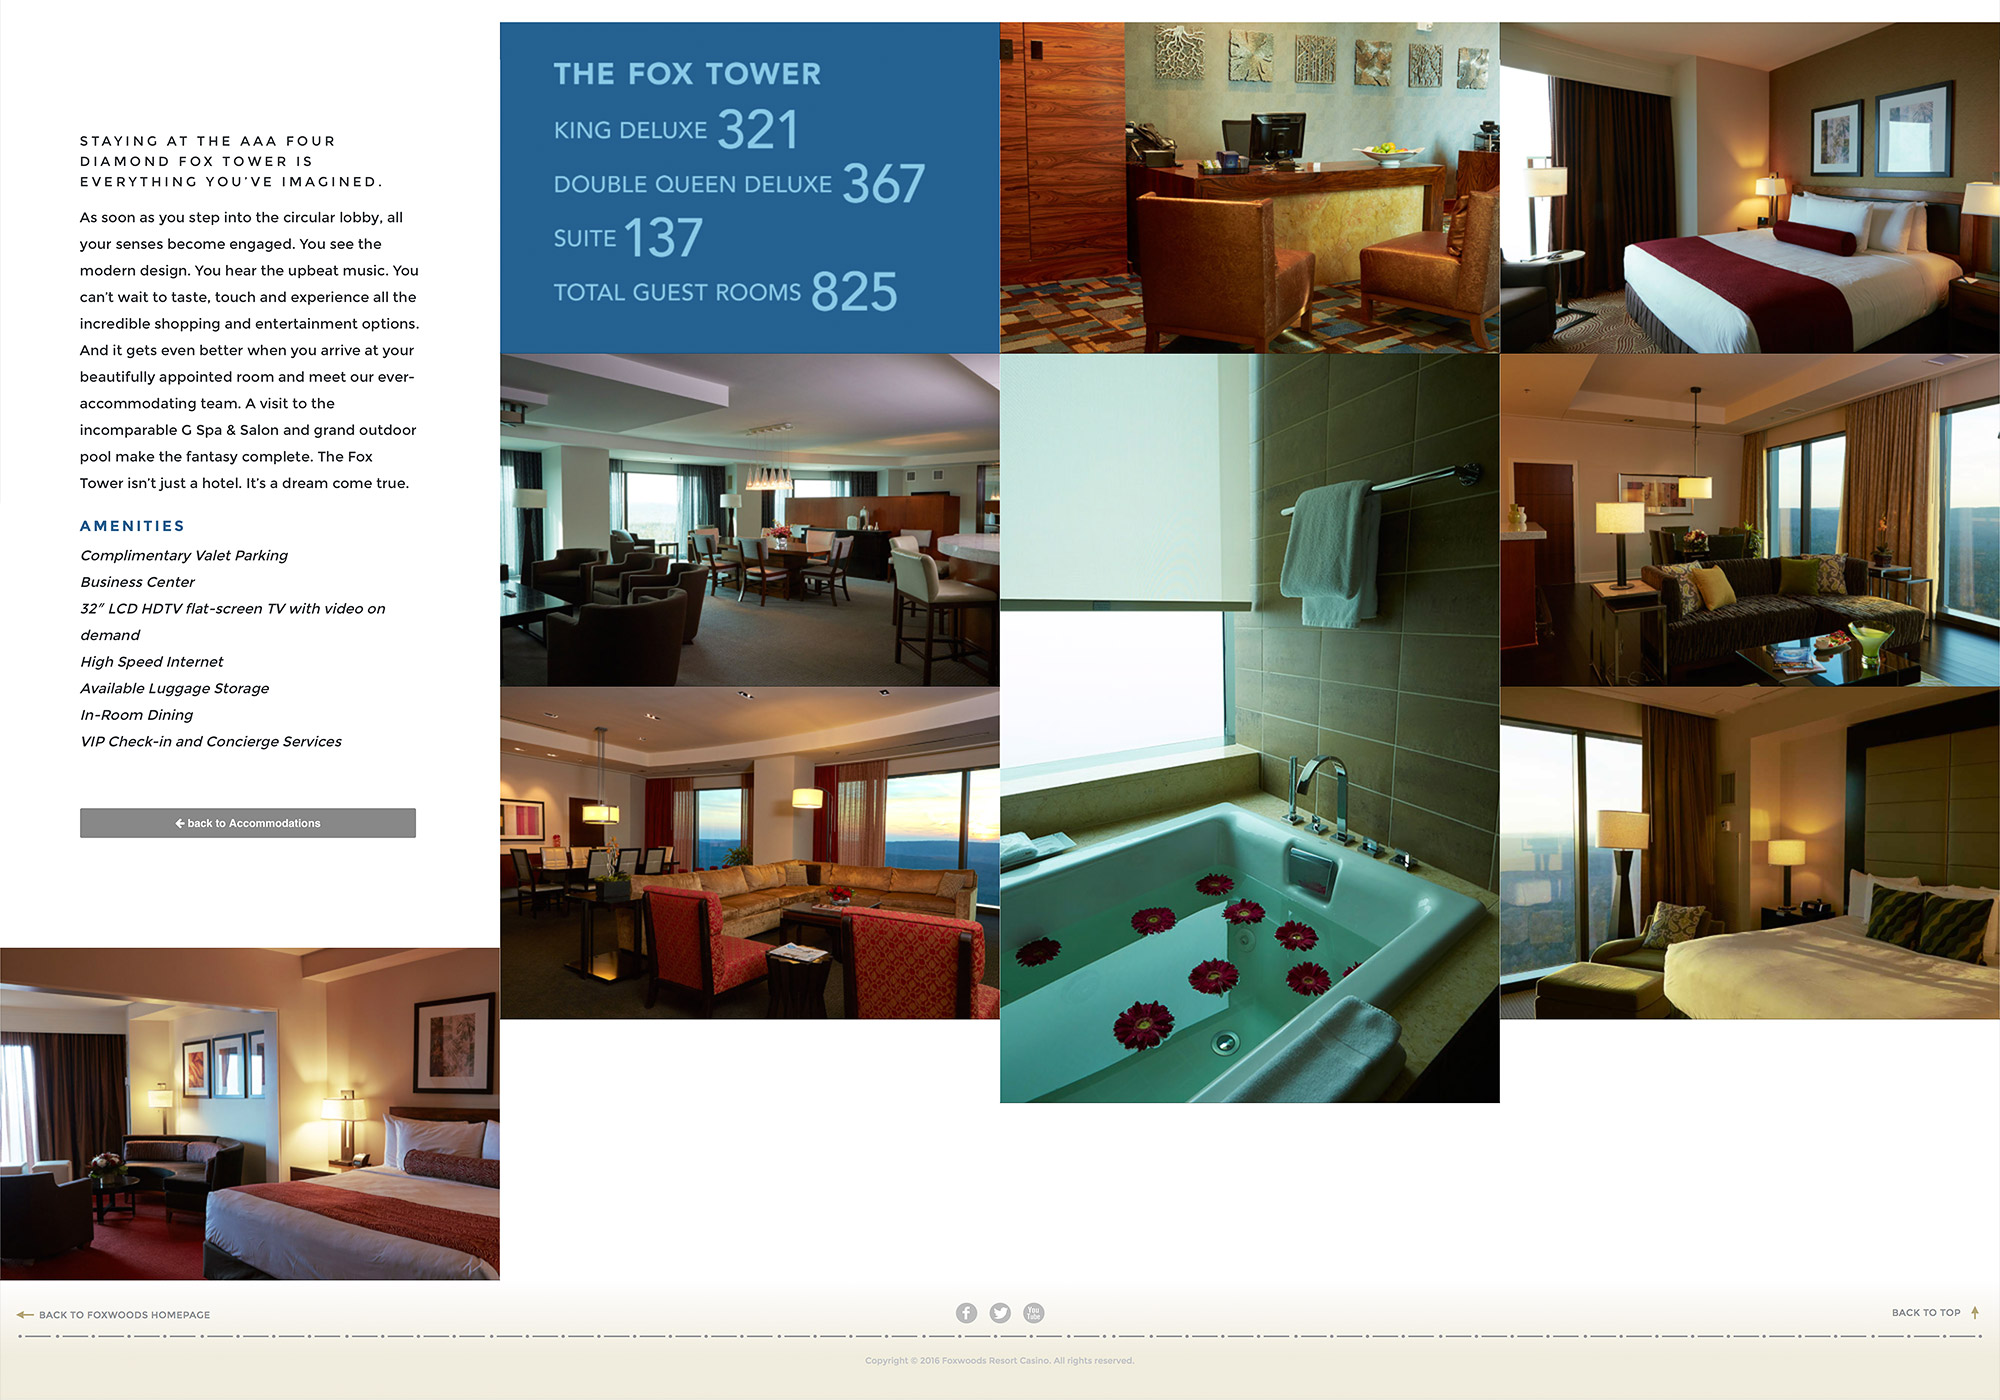 An inside page layout, mosaic layout, developed on the Foxwoods website by SlickFish Studios, from Portland, Maine.